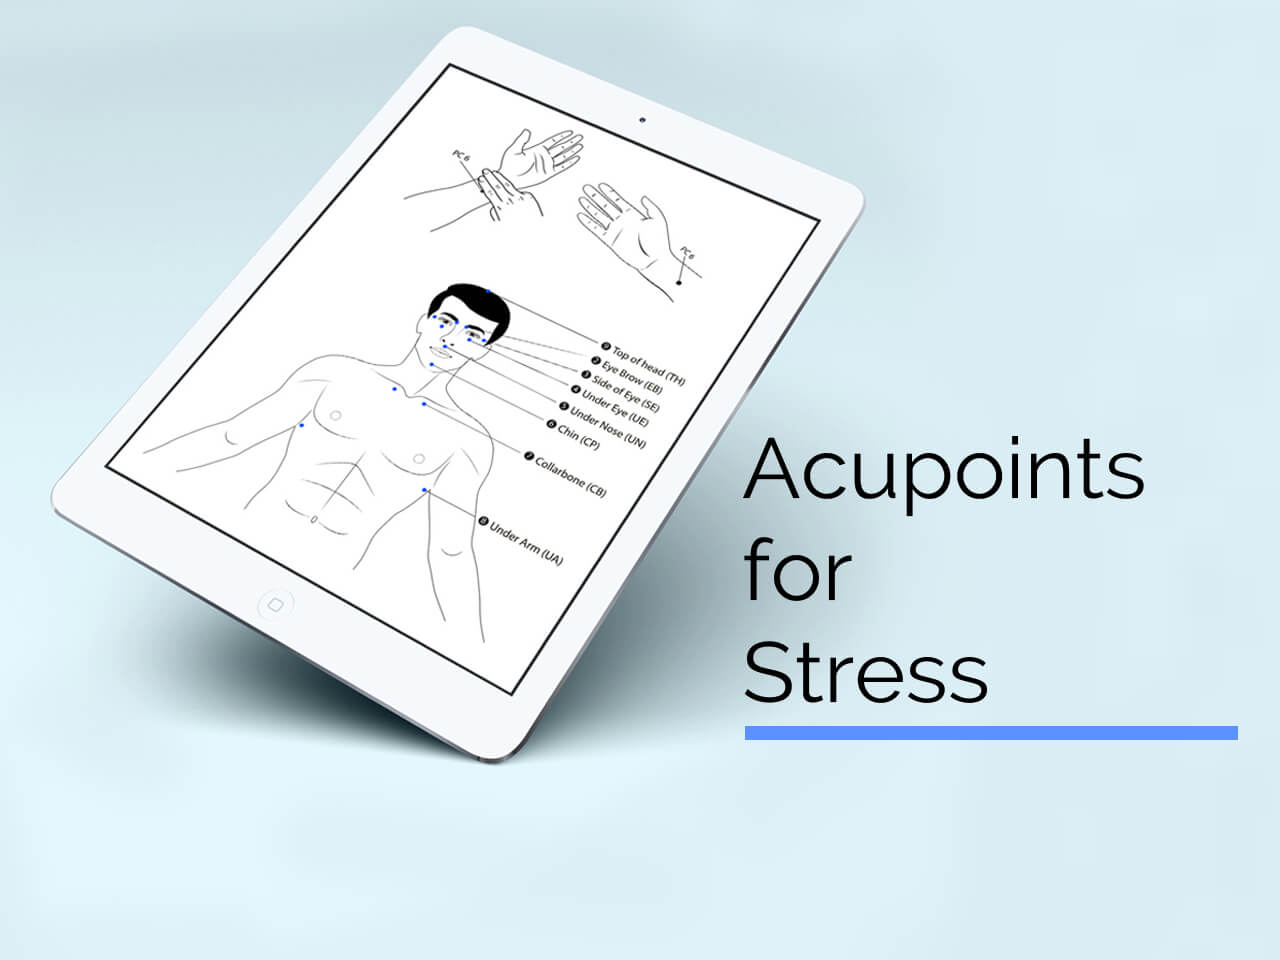 acupuncture points for stress header image